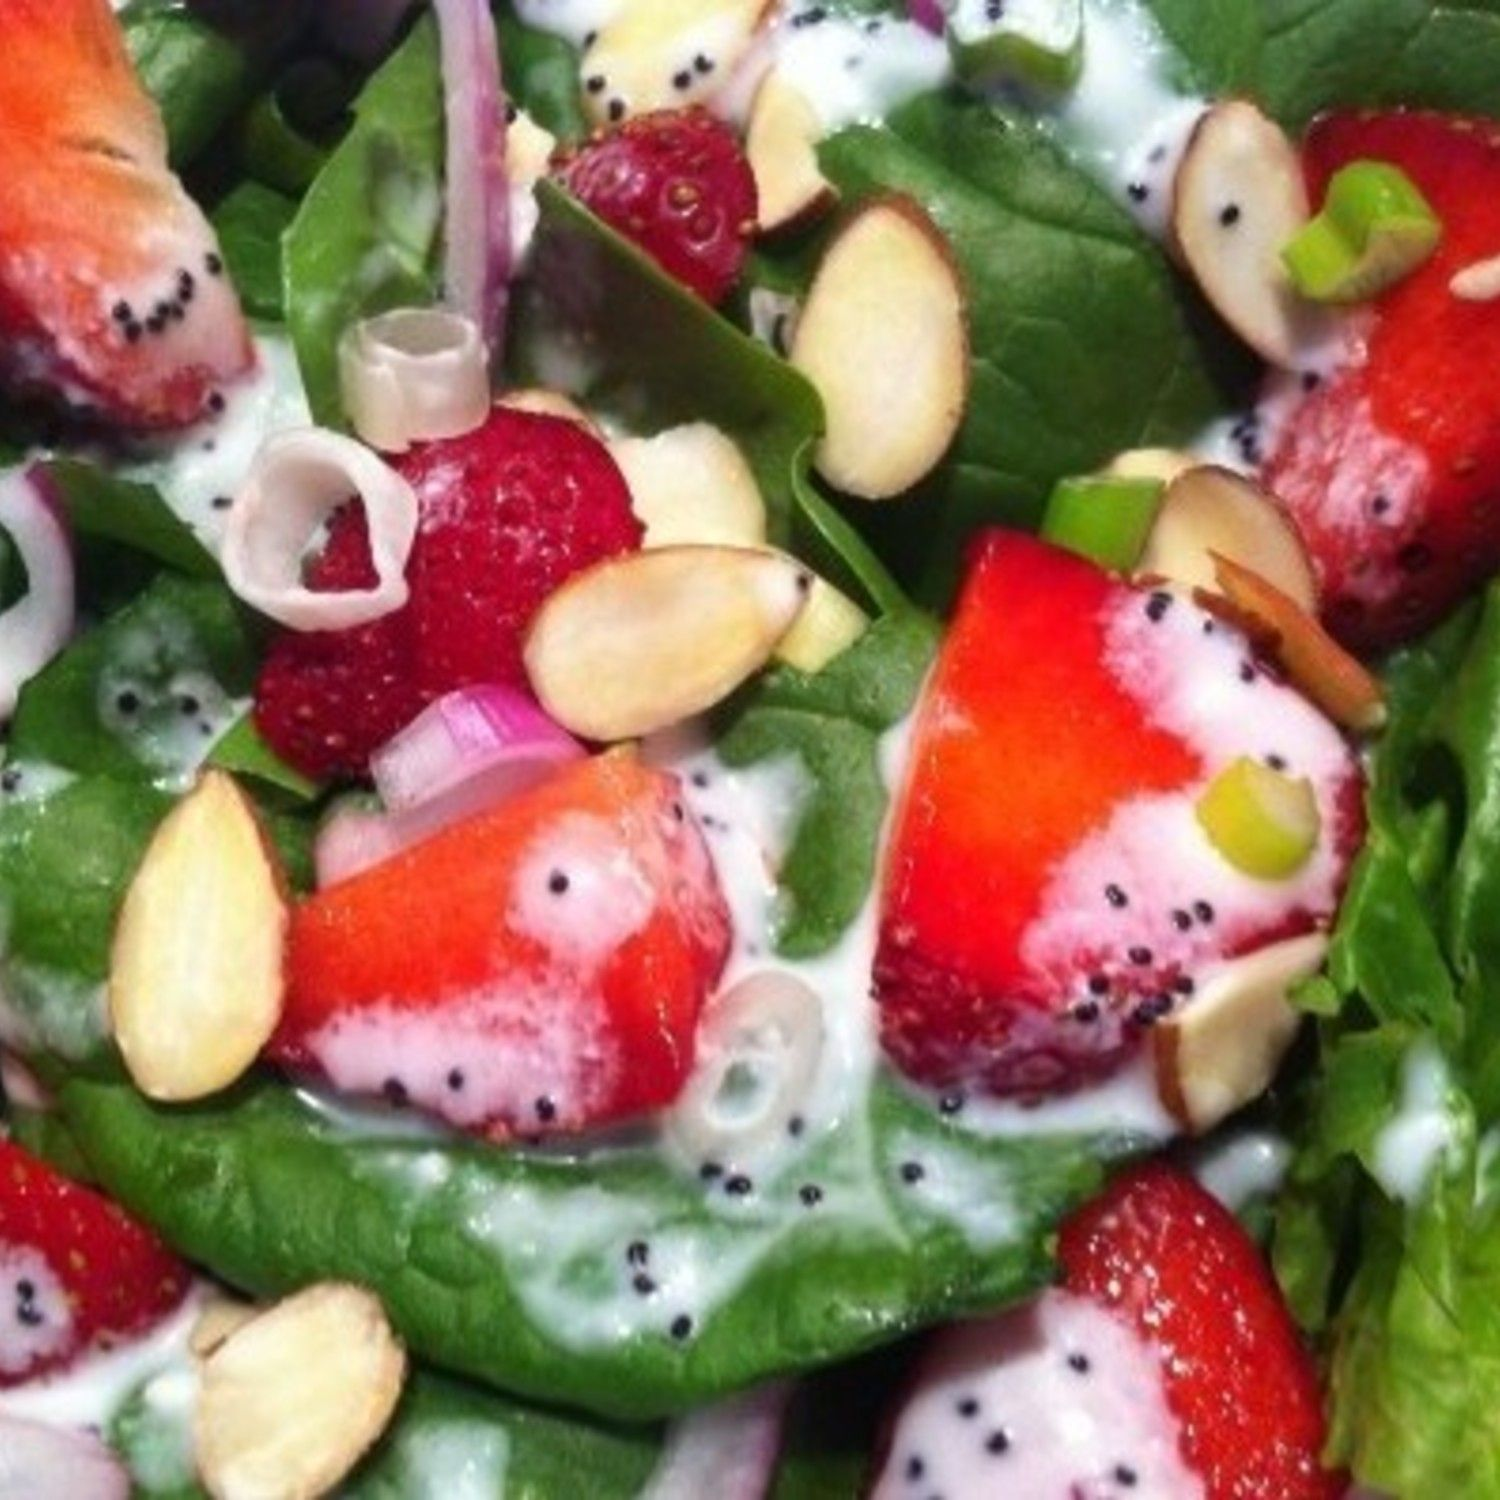 Strawberry Festival Salad Recipe | Just A Pinch Recipes